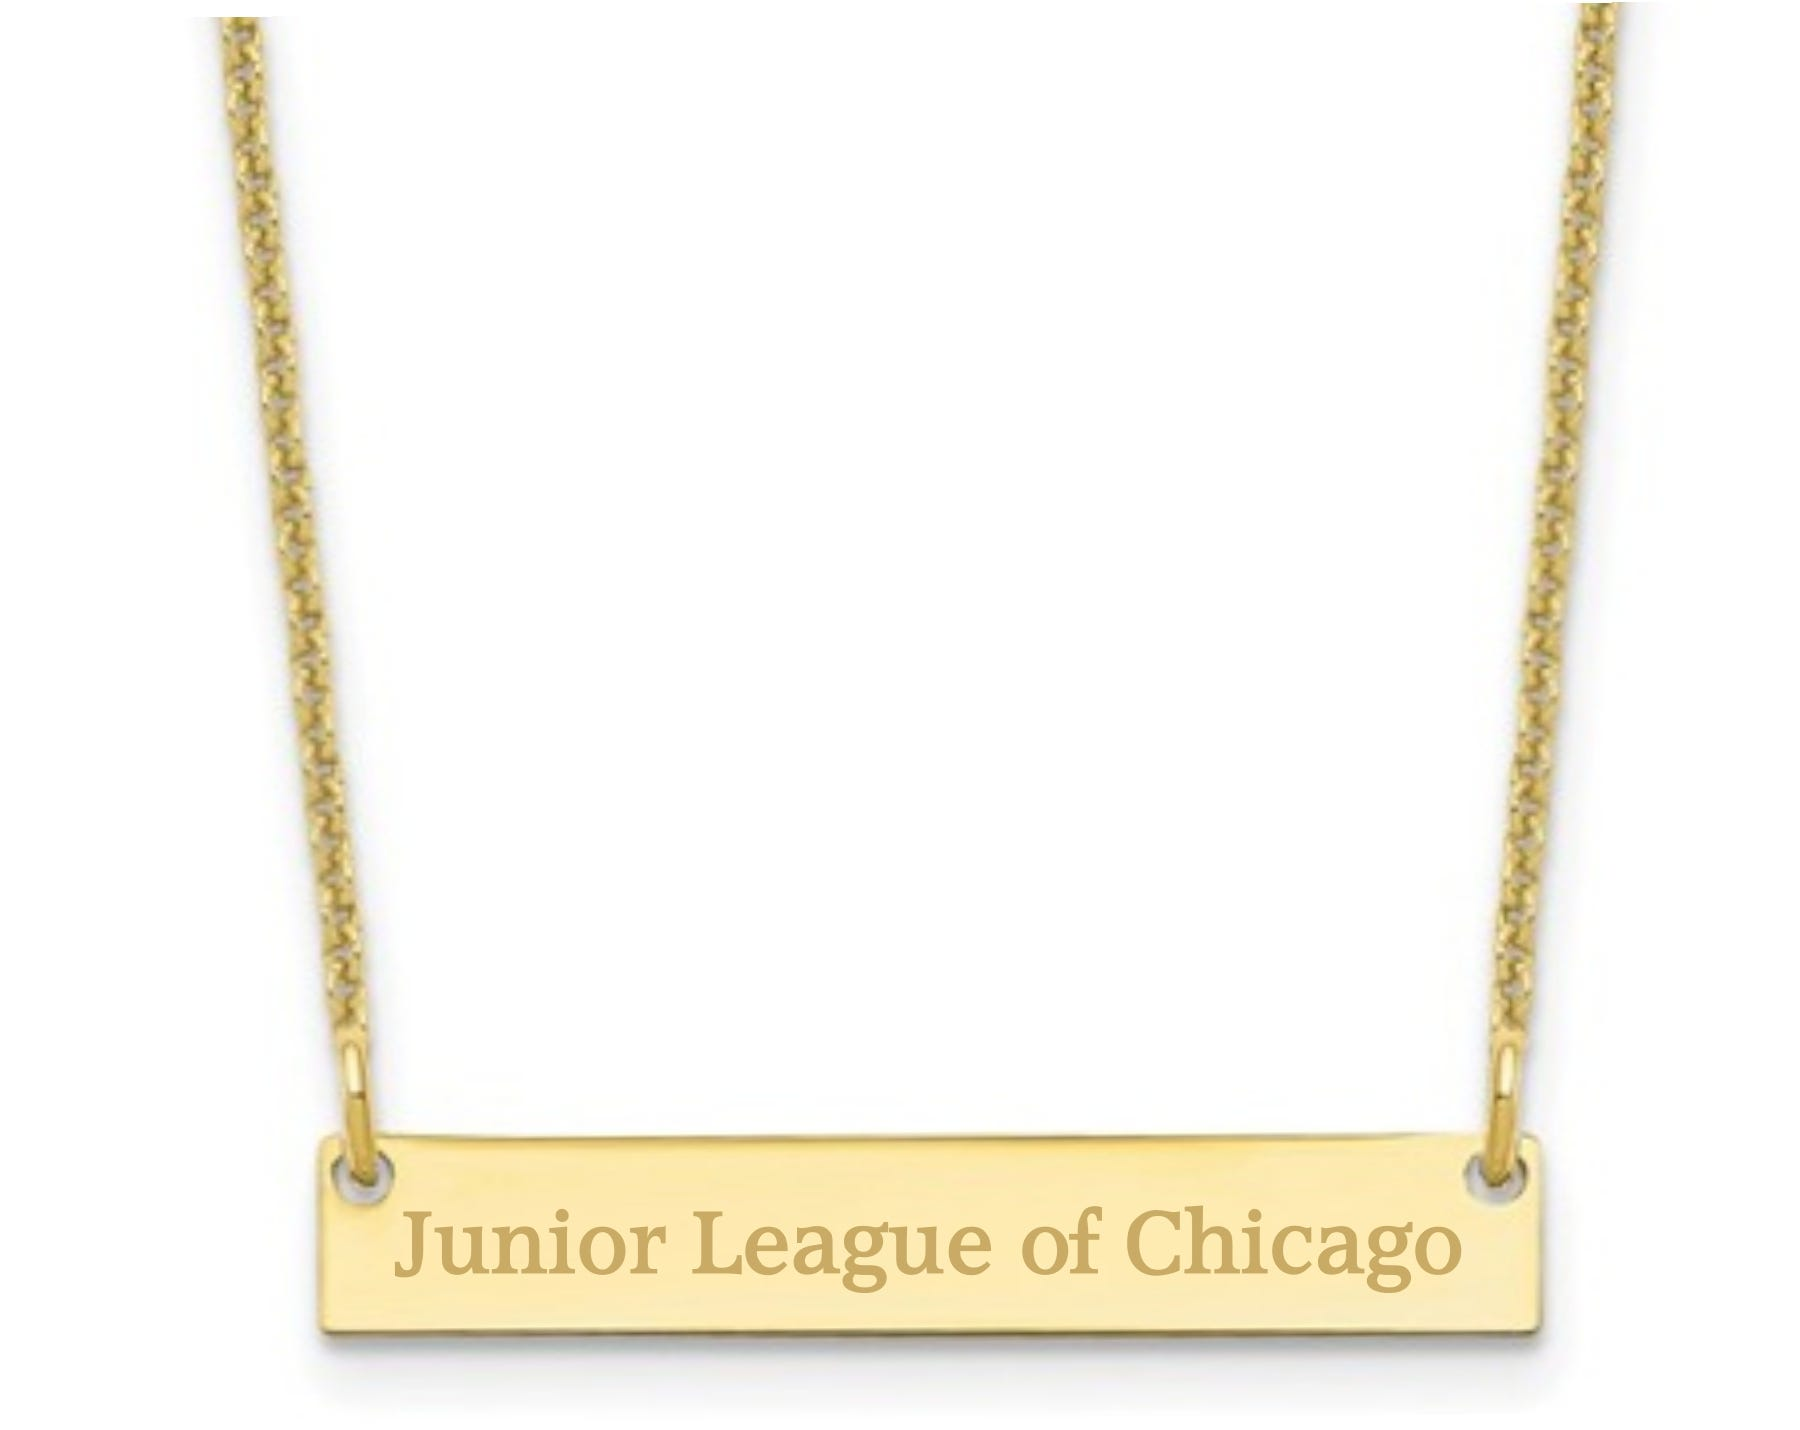 Junior League of Chicago Bar Necklace in 10k Yellow Gold